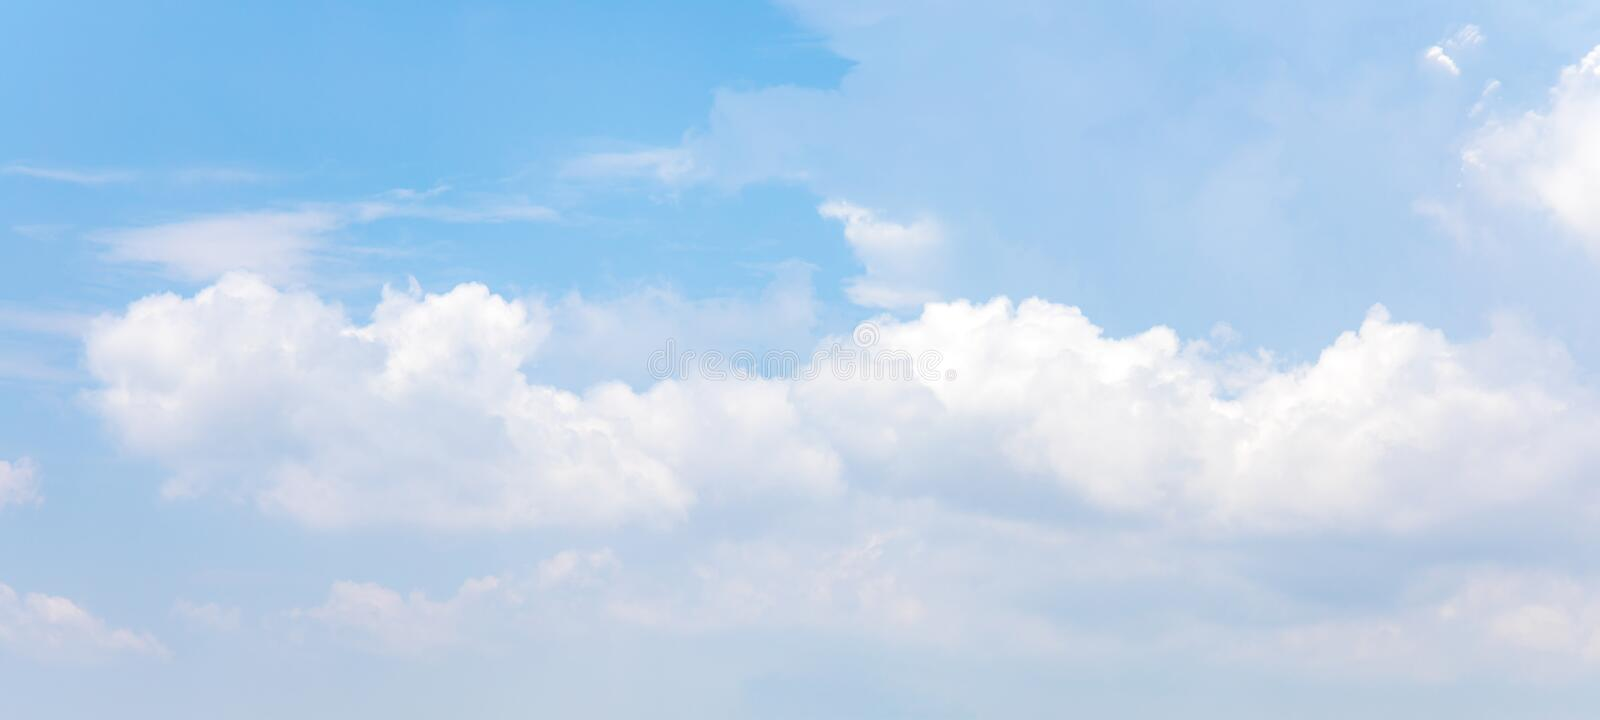 Panorama or panoramic photo of blue sky and white clouds or cloudscape. stock images